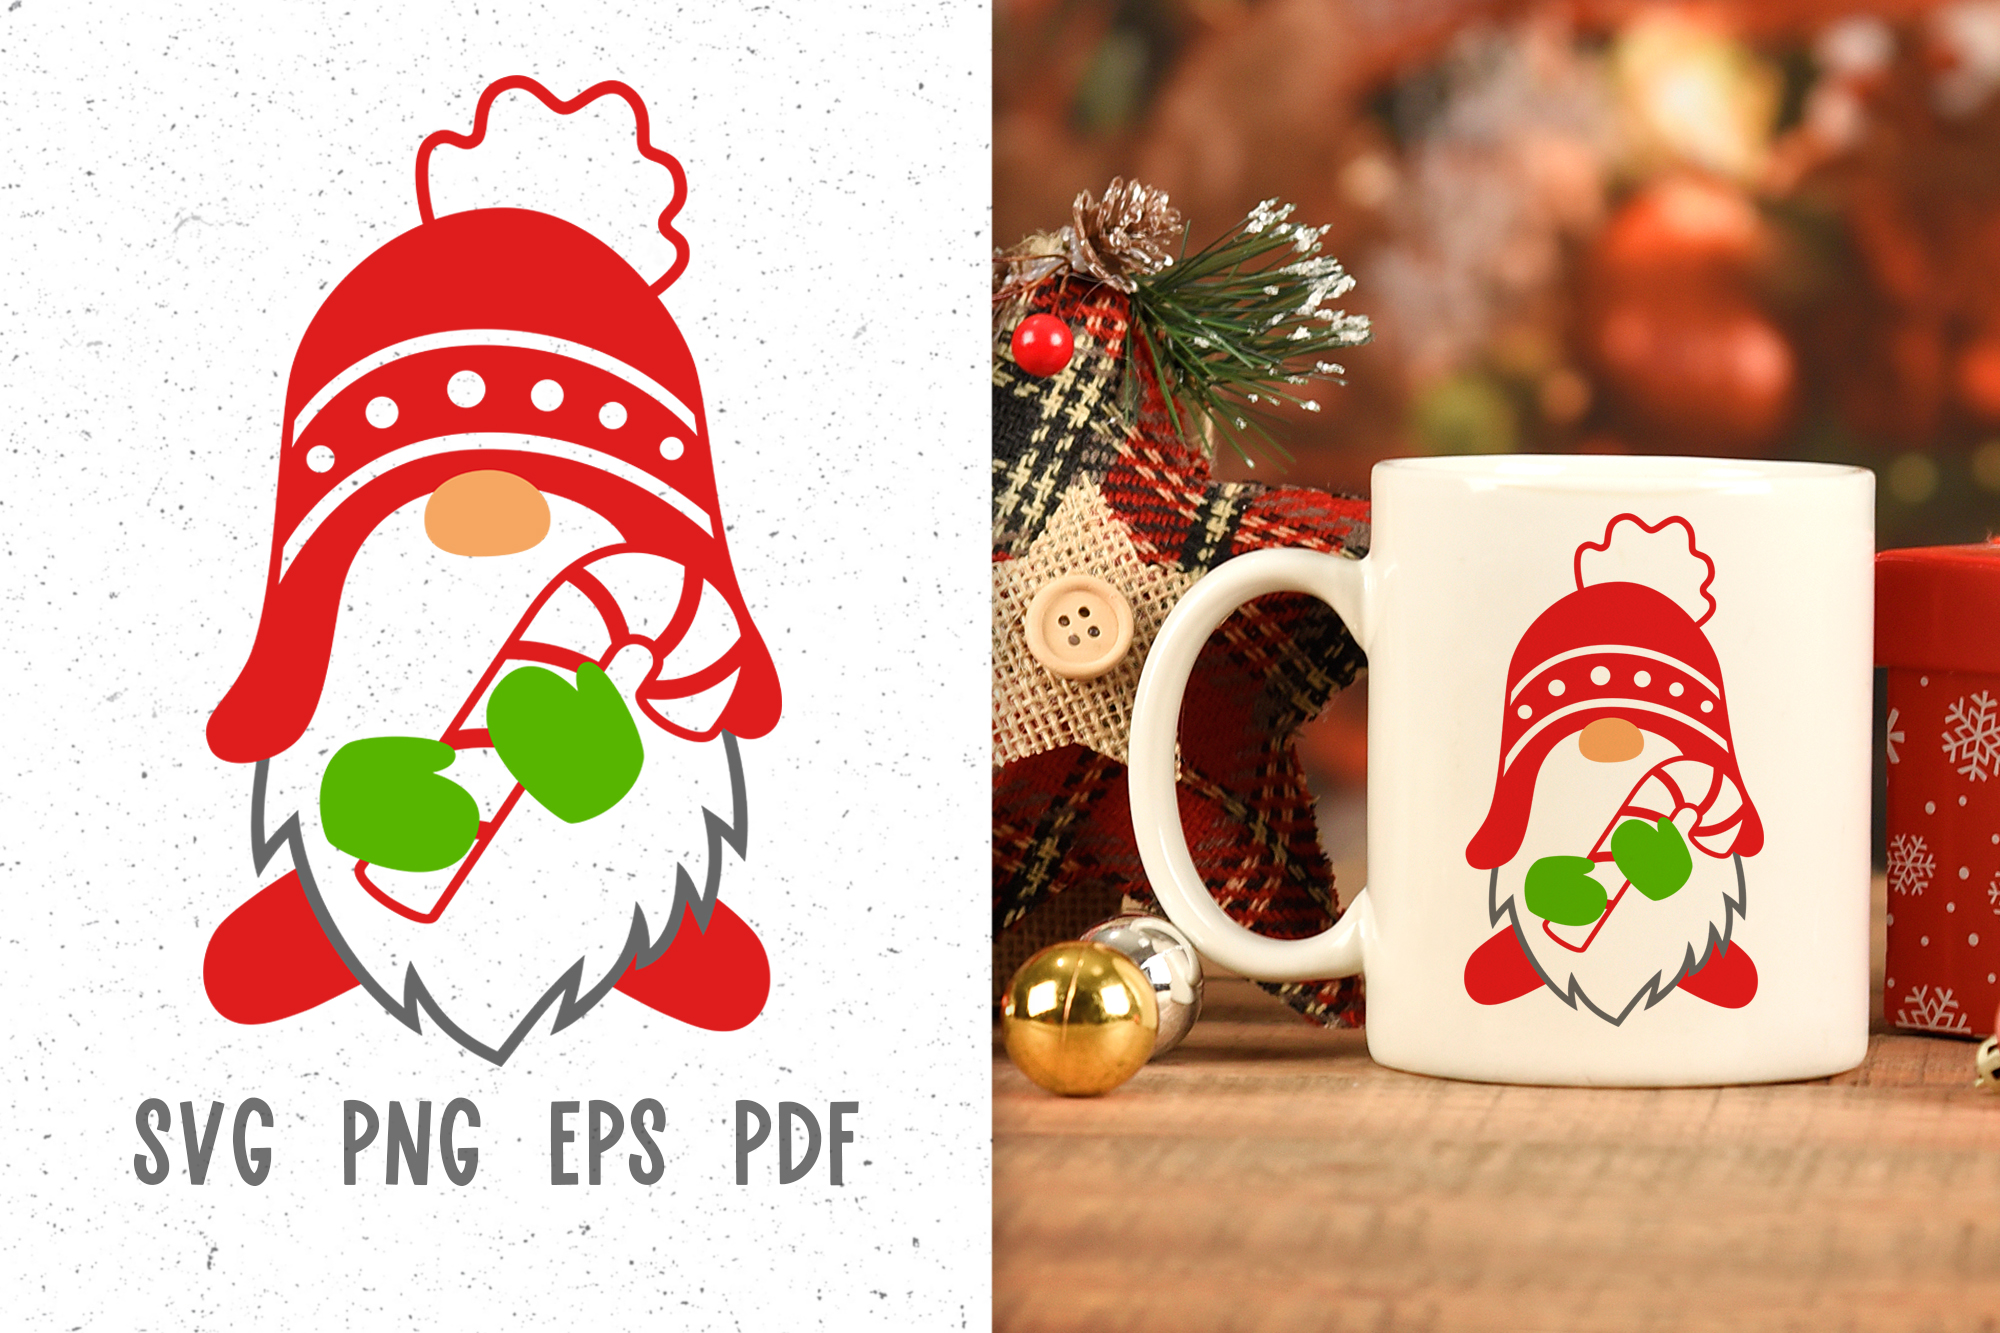 Christmas Mug Design With Gnome Svg Graphic By Greenwolf Art Creative Fabrica